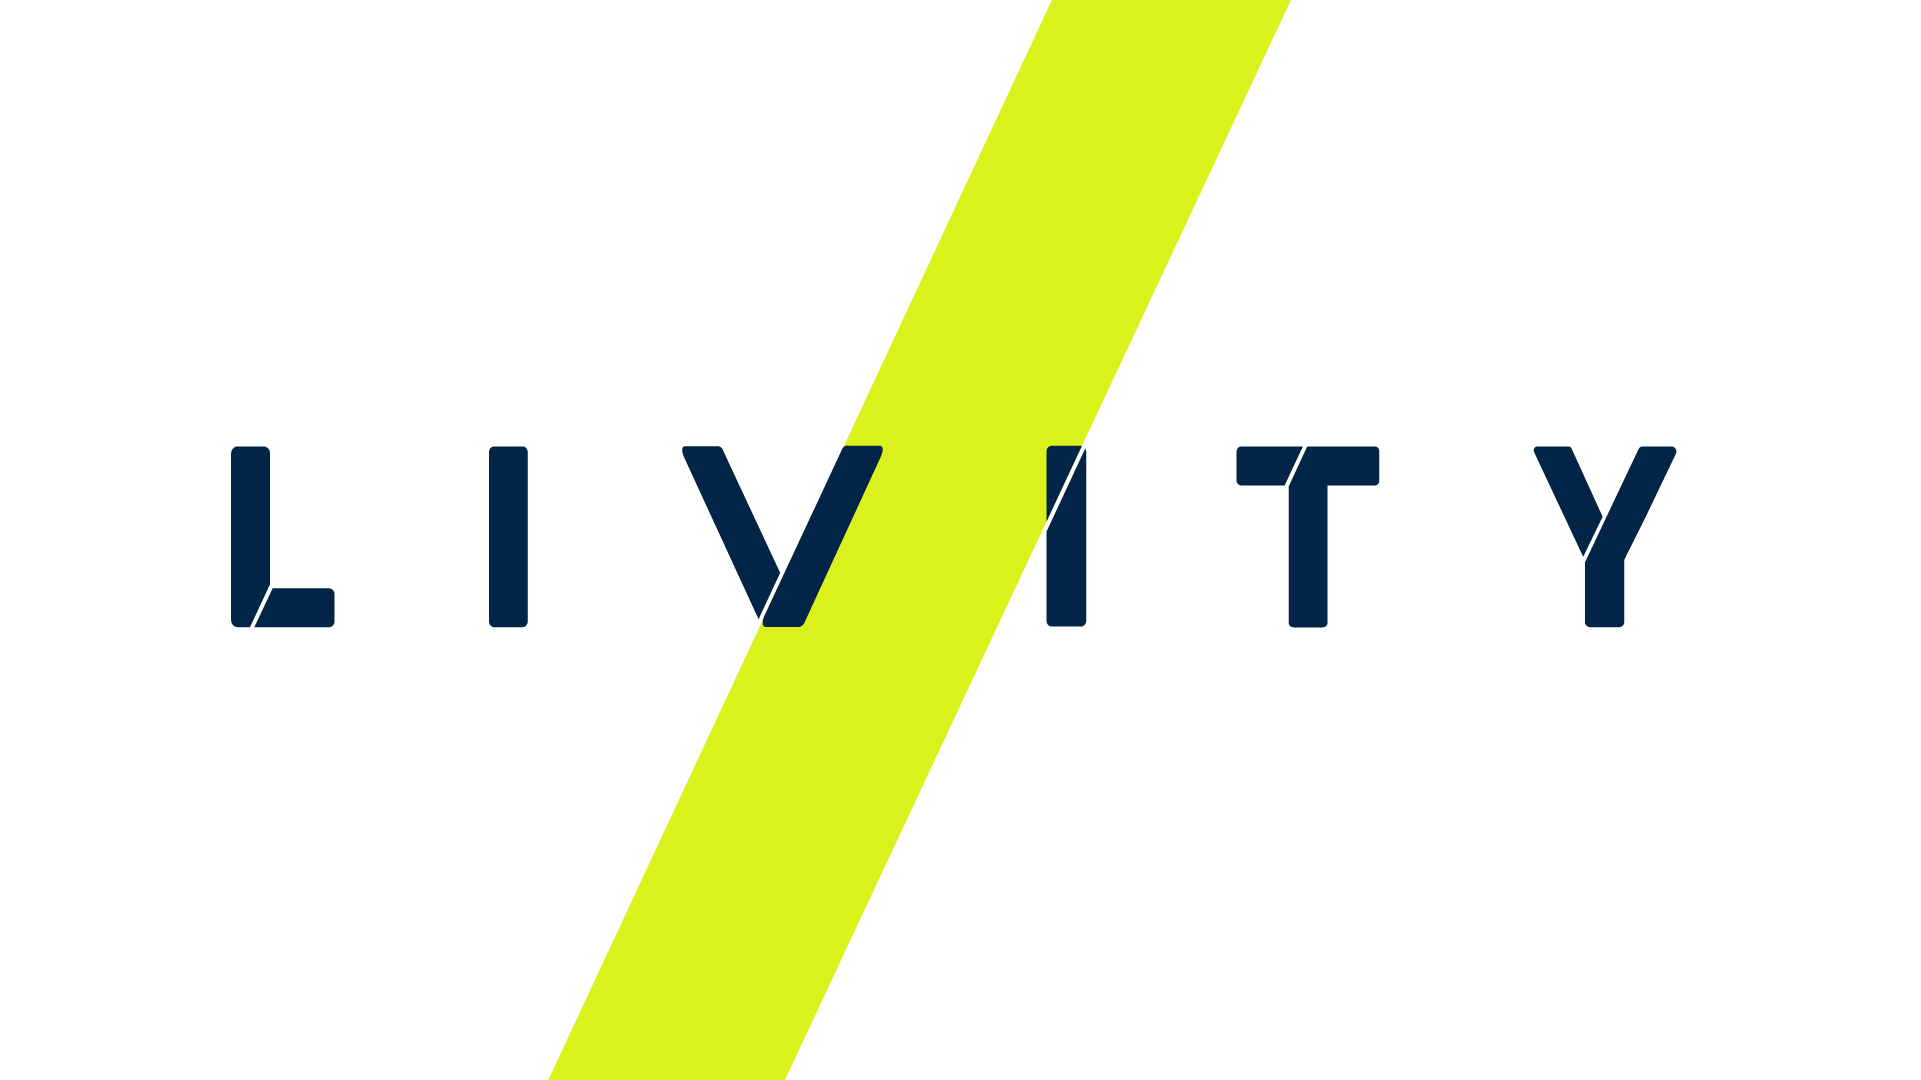 Livity_logo_SS18_Colours_04.png